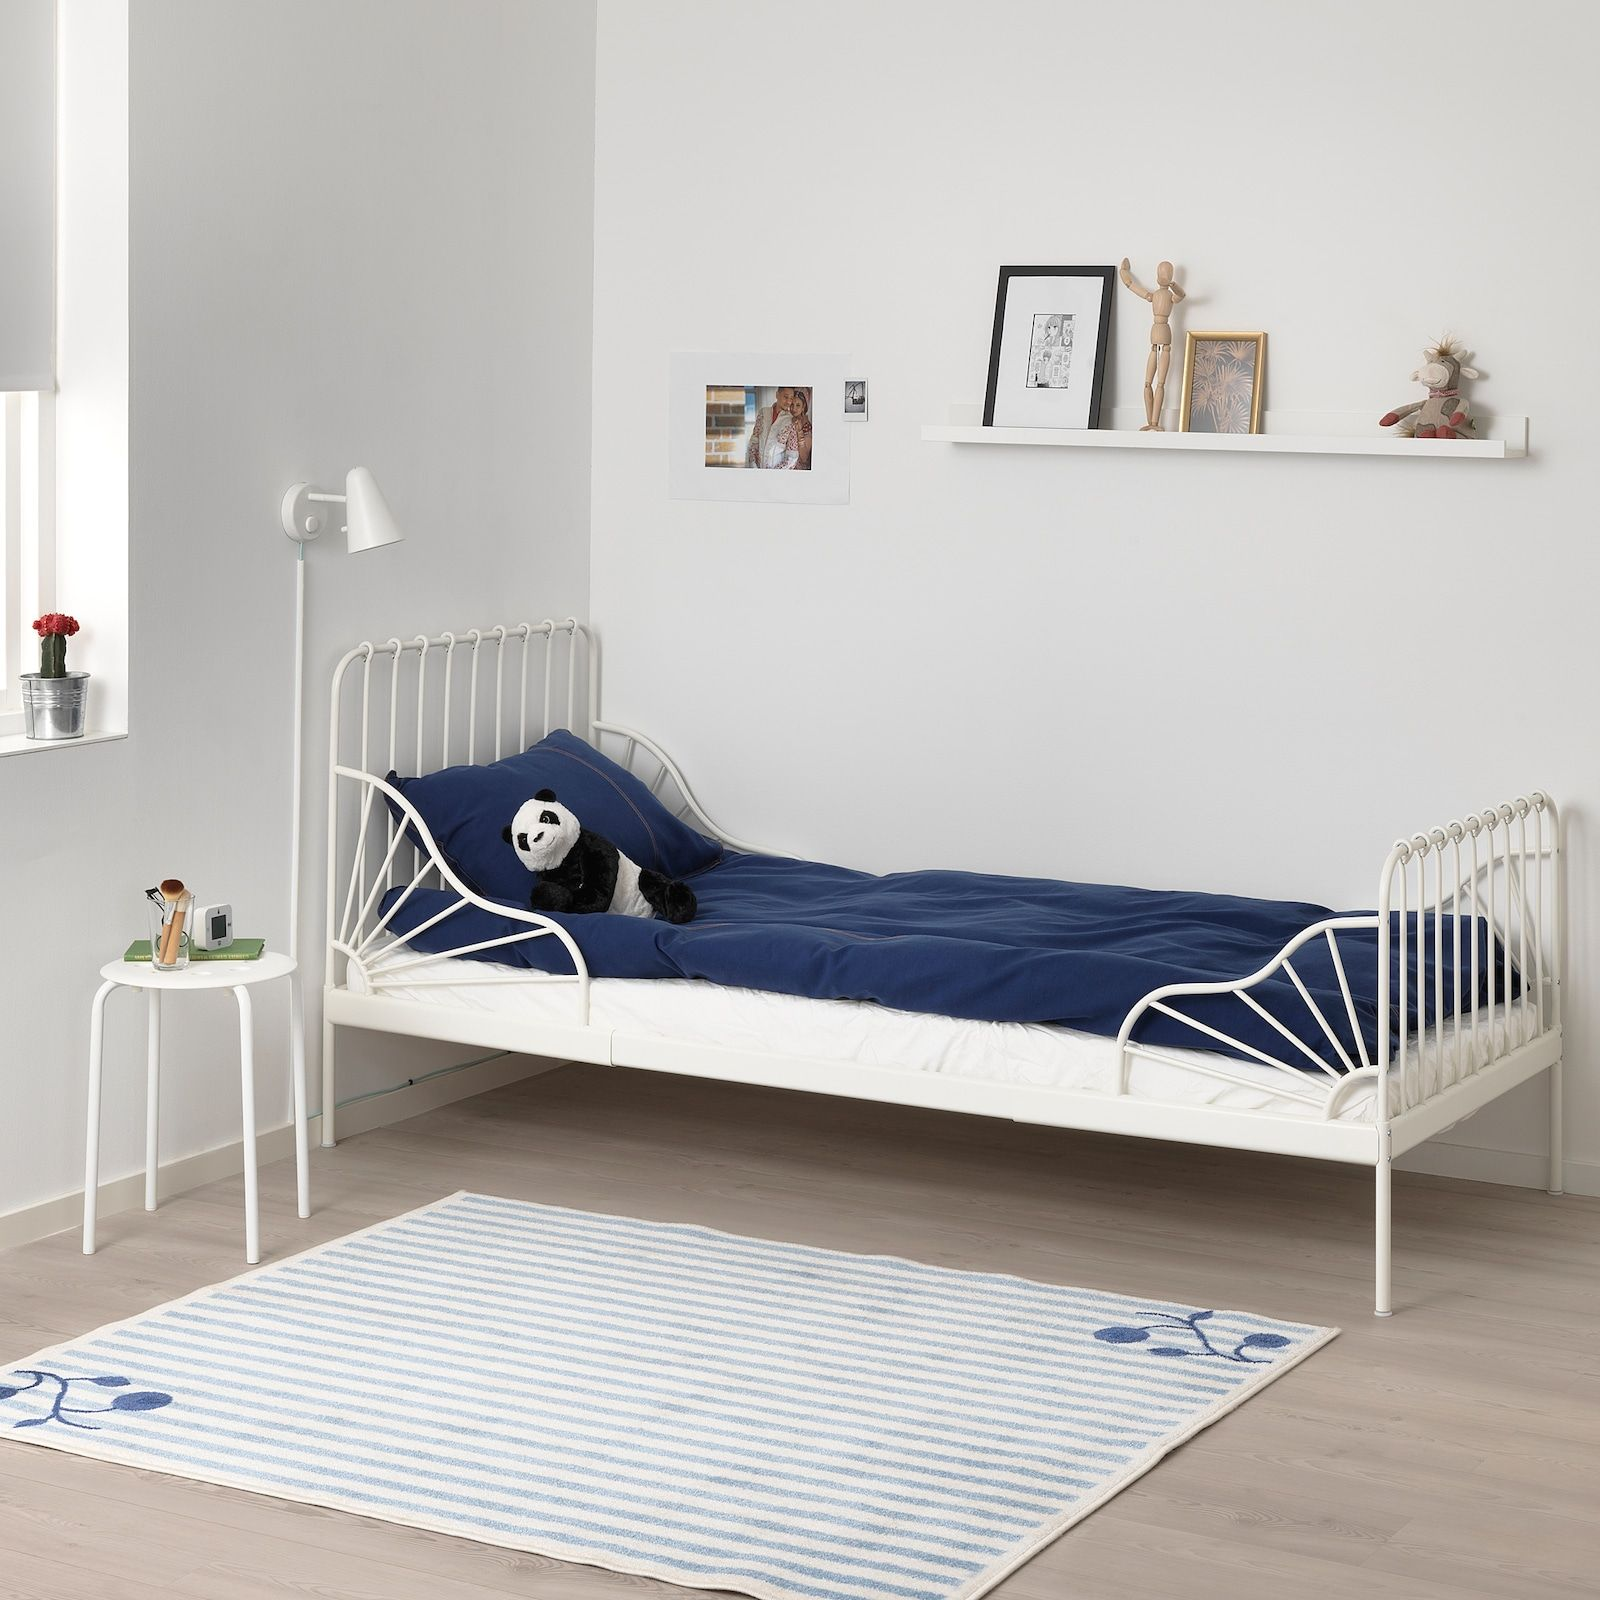 Minnen Ext Bed Frame With Slatted Bed Base White 38 1 4x74 3 4 Ikea In 2020 Bed Base Bed Frame Toddler Bedroom Decor